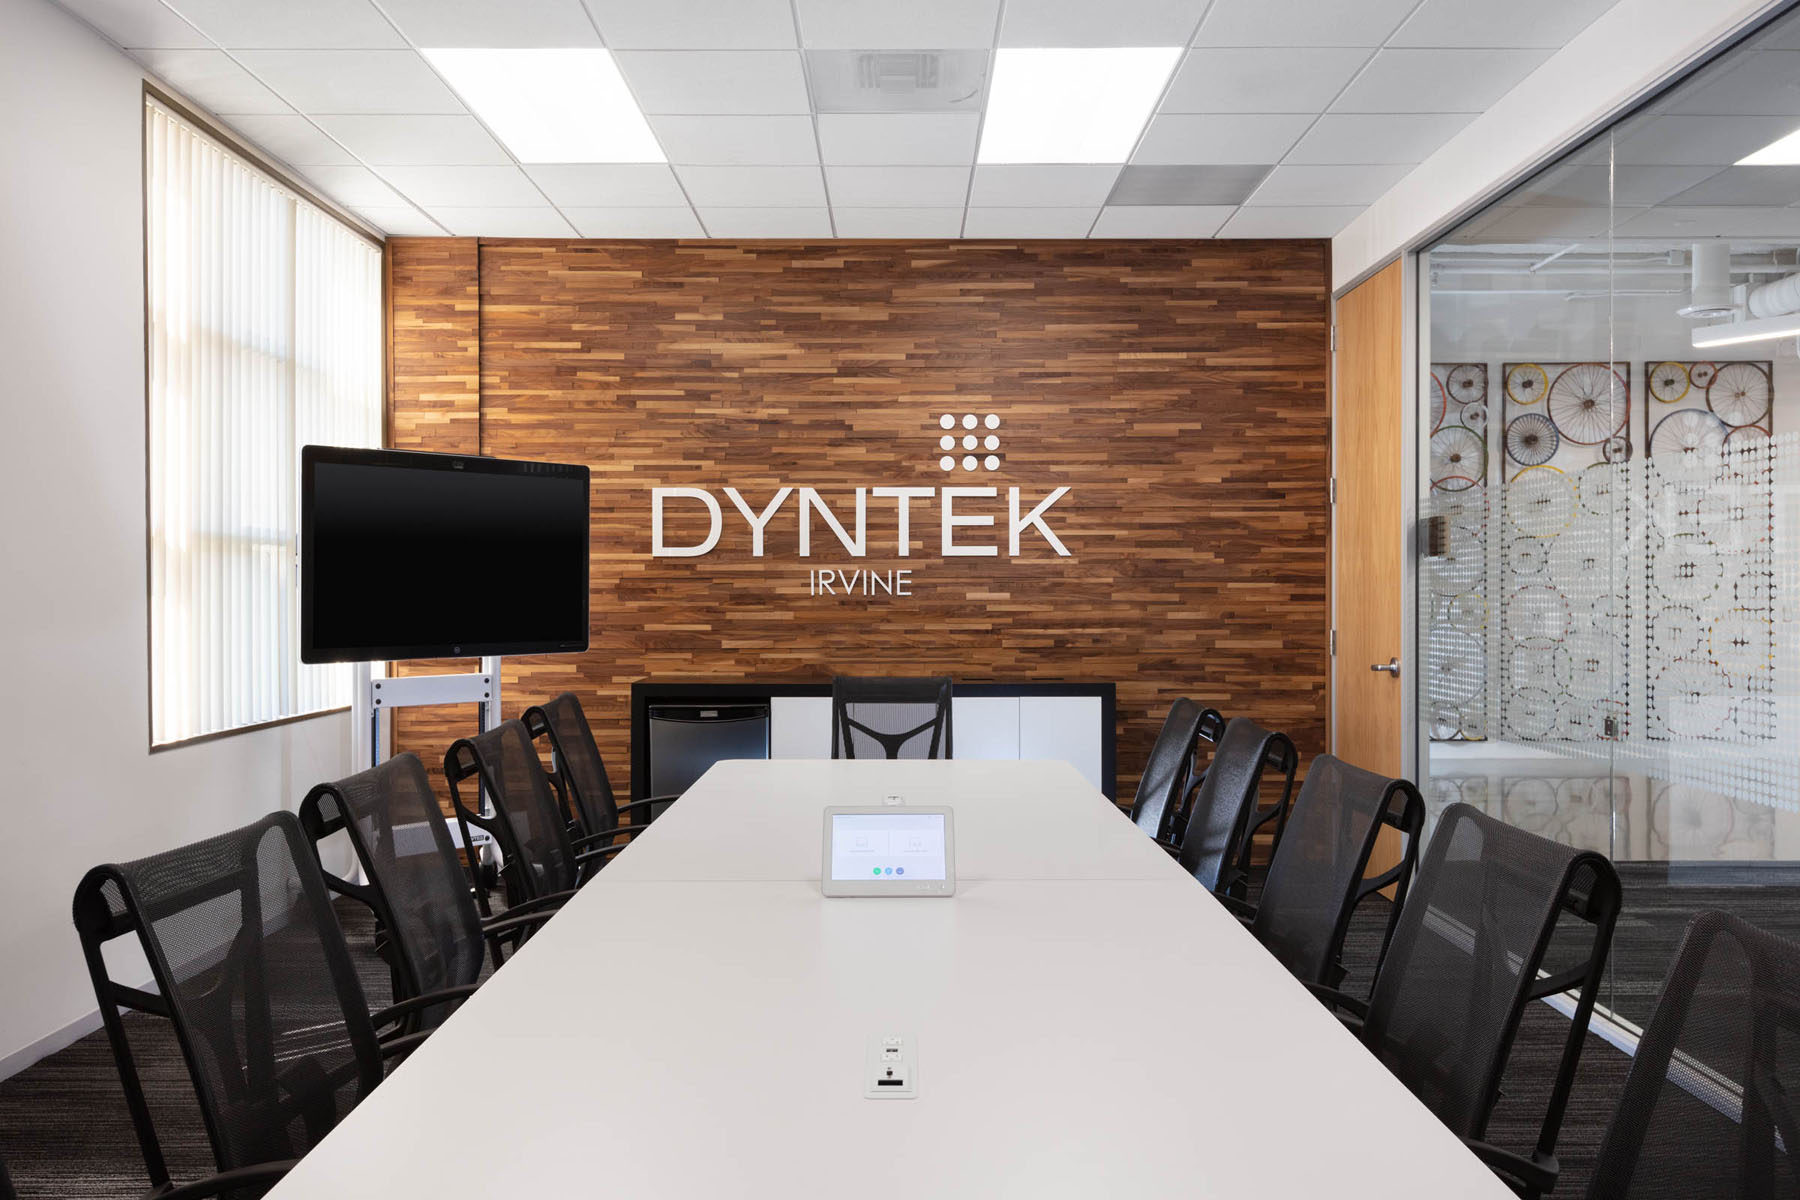 DynTek Corporate Headquarters